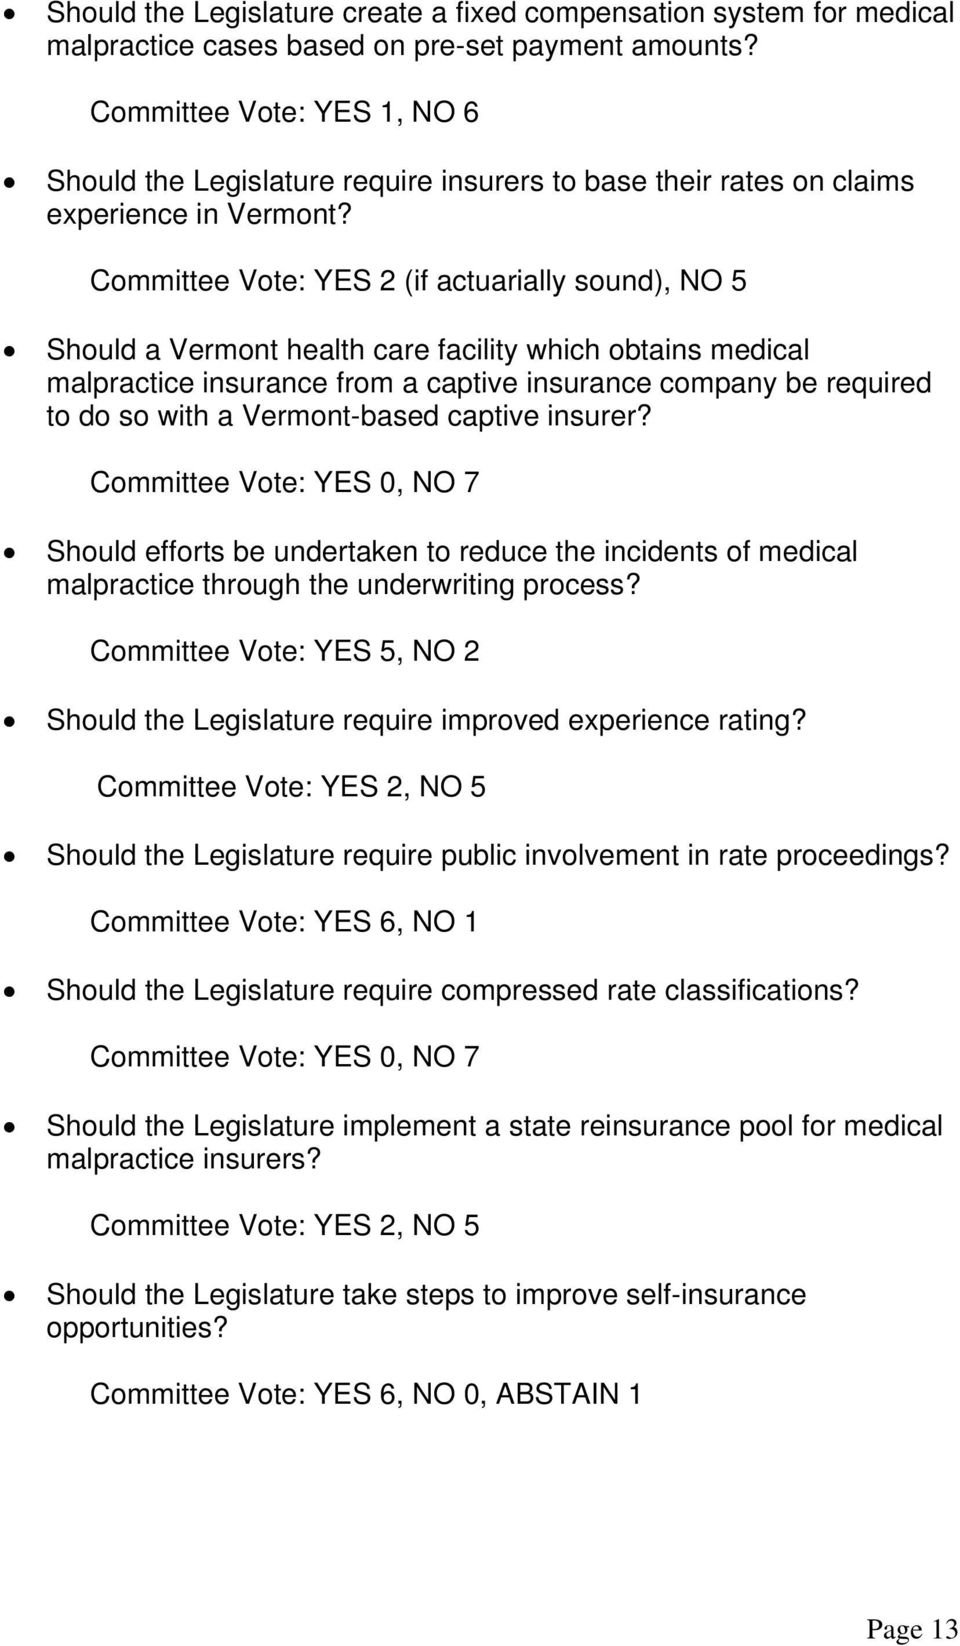 Committee Vote: YES 2 (if actuarially sound), NO 5 Should a Vermont health care facility which obtains medical malpractice insurance from a captive insurance company be required to do so with a